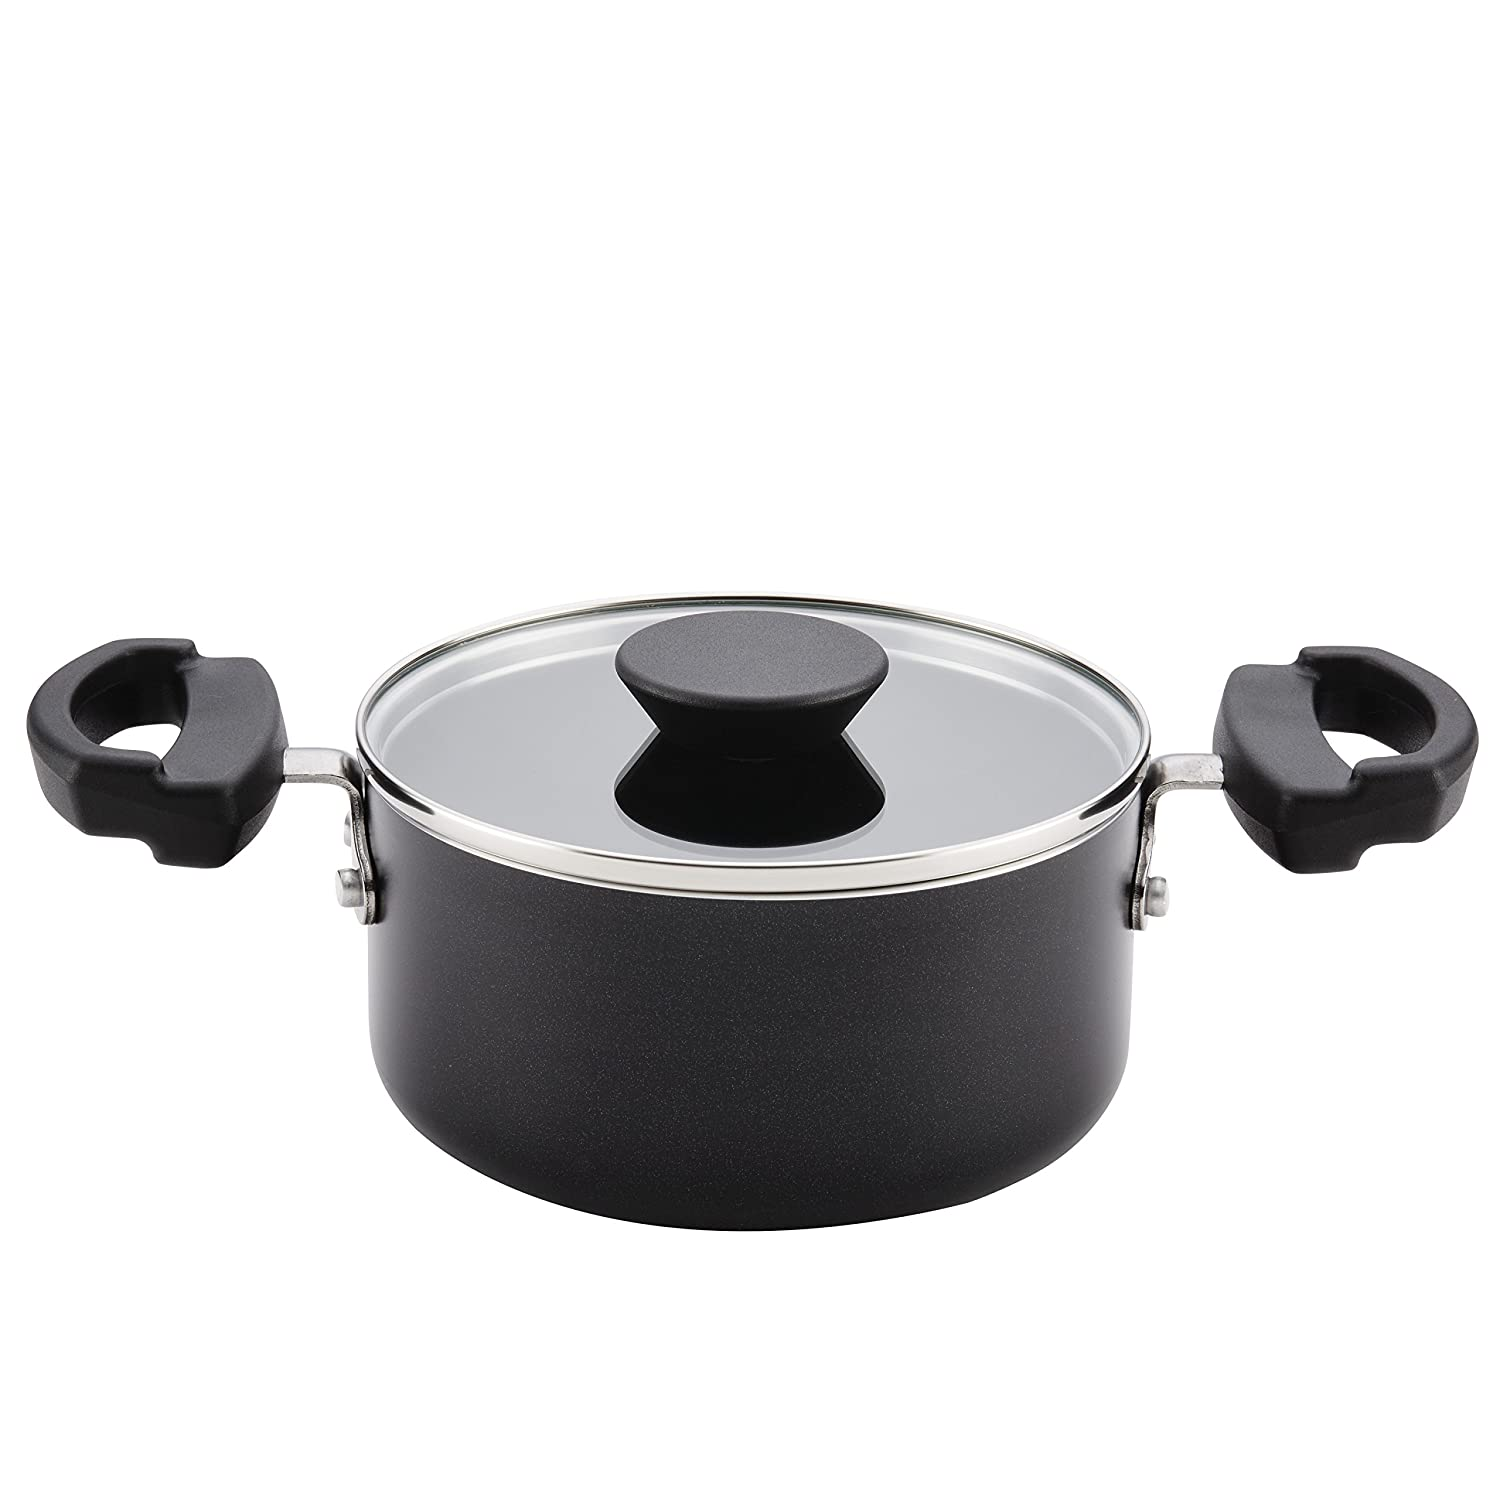 Farberware Neat Nest Space Saving 1.5-Quart Covered Saucepot with Lid, Black